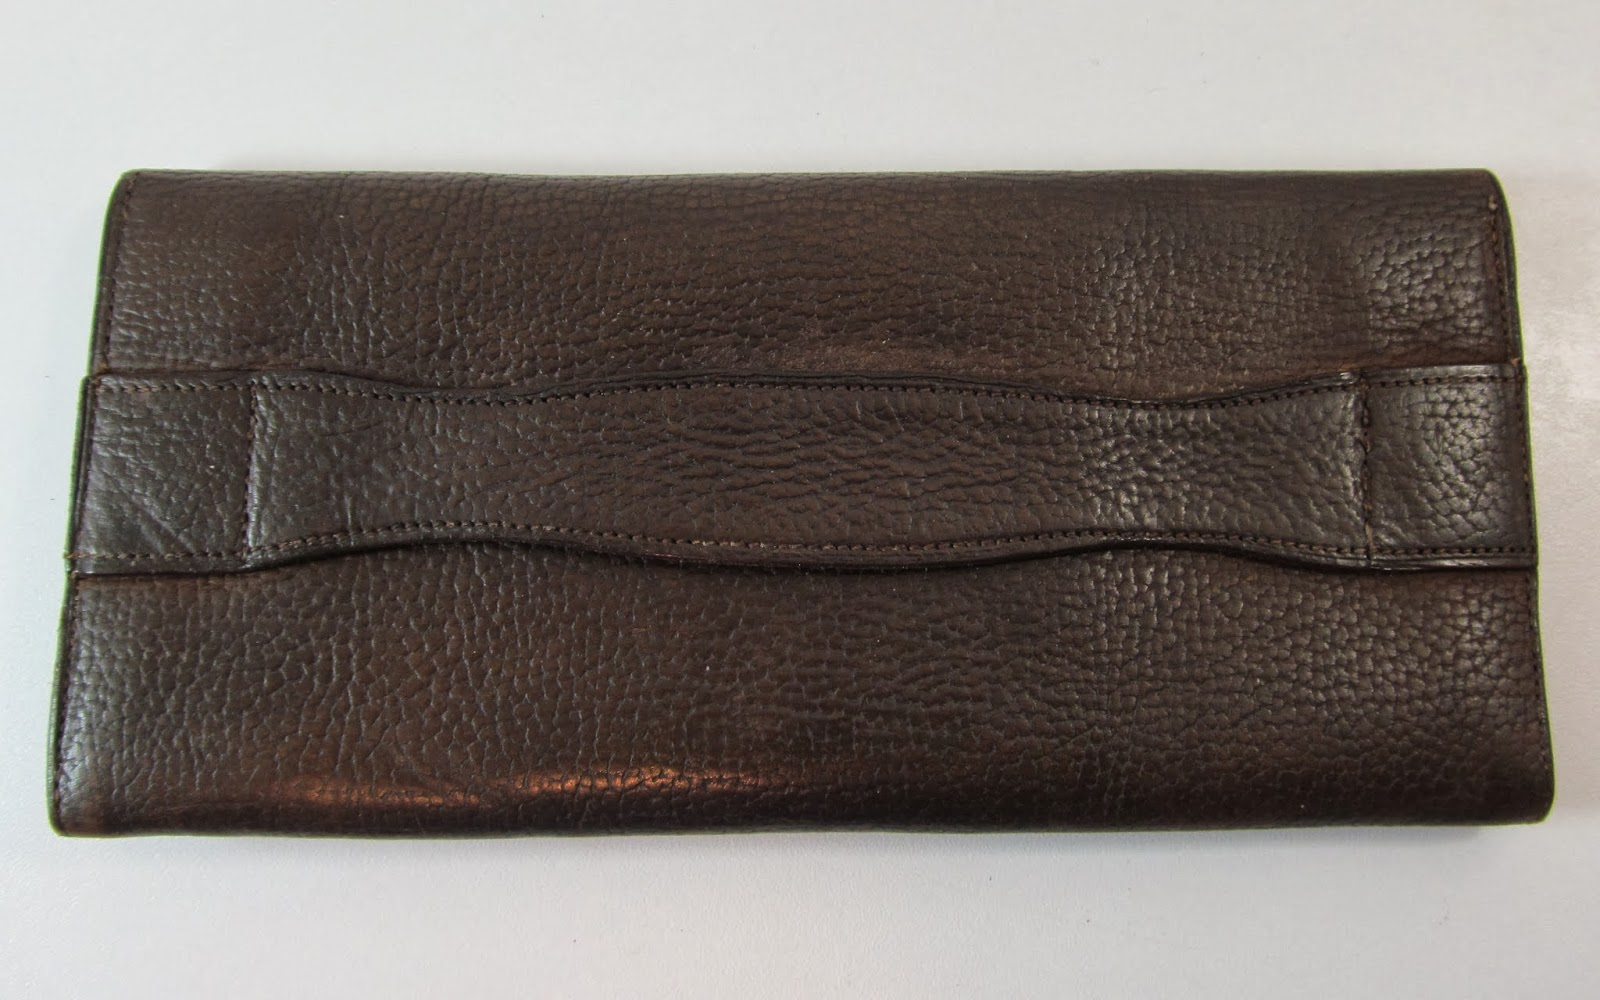 VINTAGE BROWN LEATHER HAND STRAP PURSE WALLET CLUTCH WITH ...